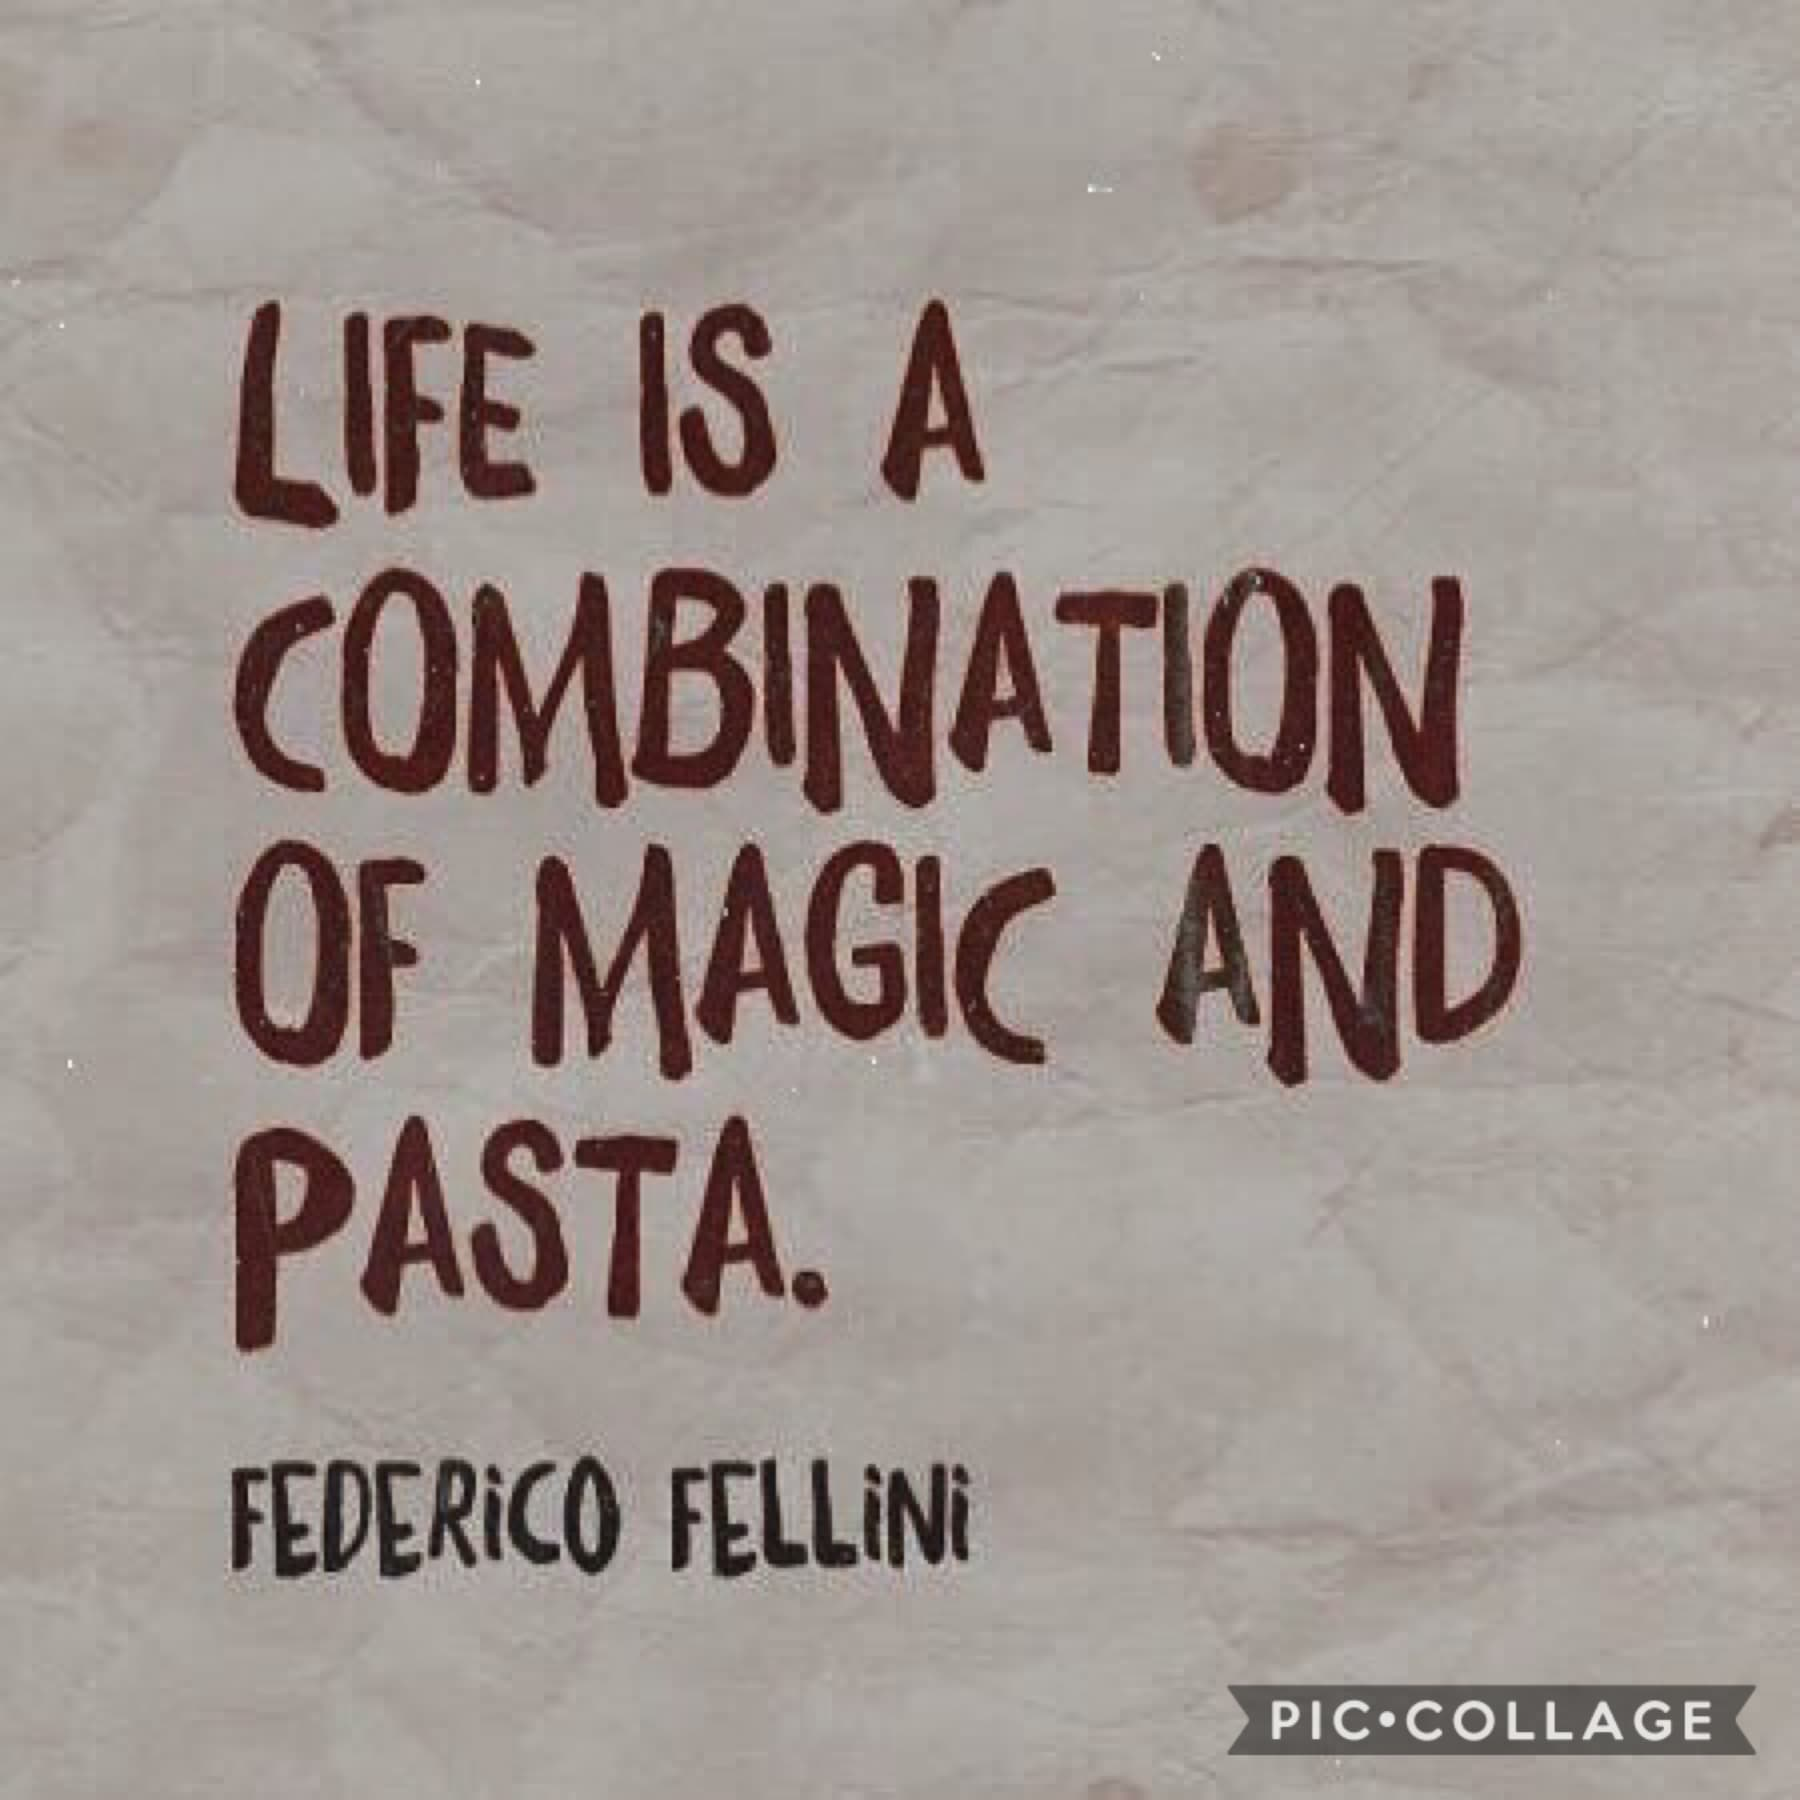 This quote speaks to me on a spiritual level. Seriously tho, there's very few things i care about but pasta is definitely one of them. 🍝